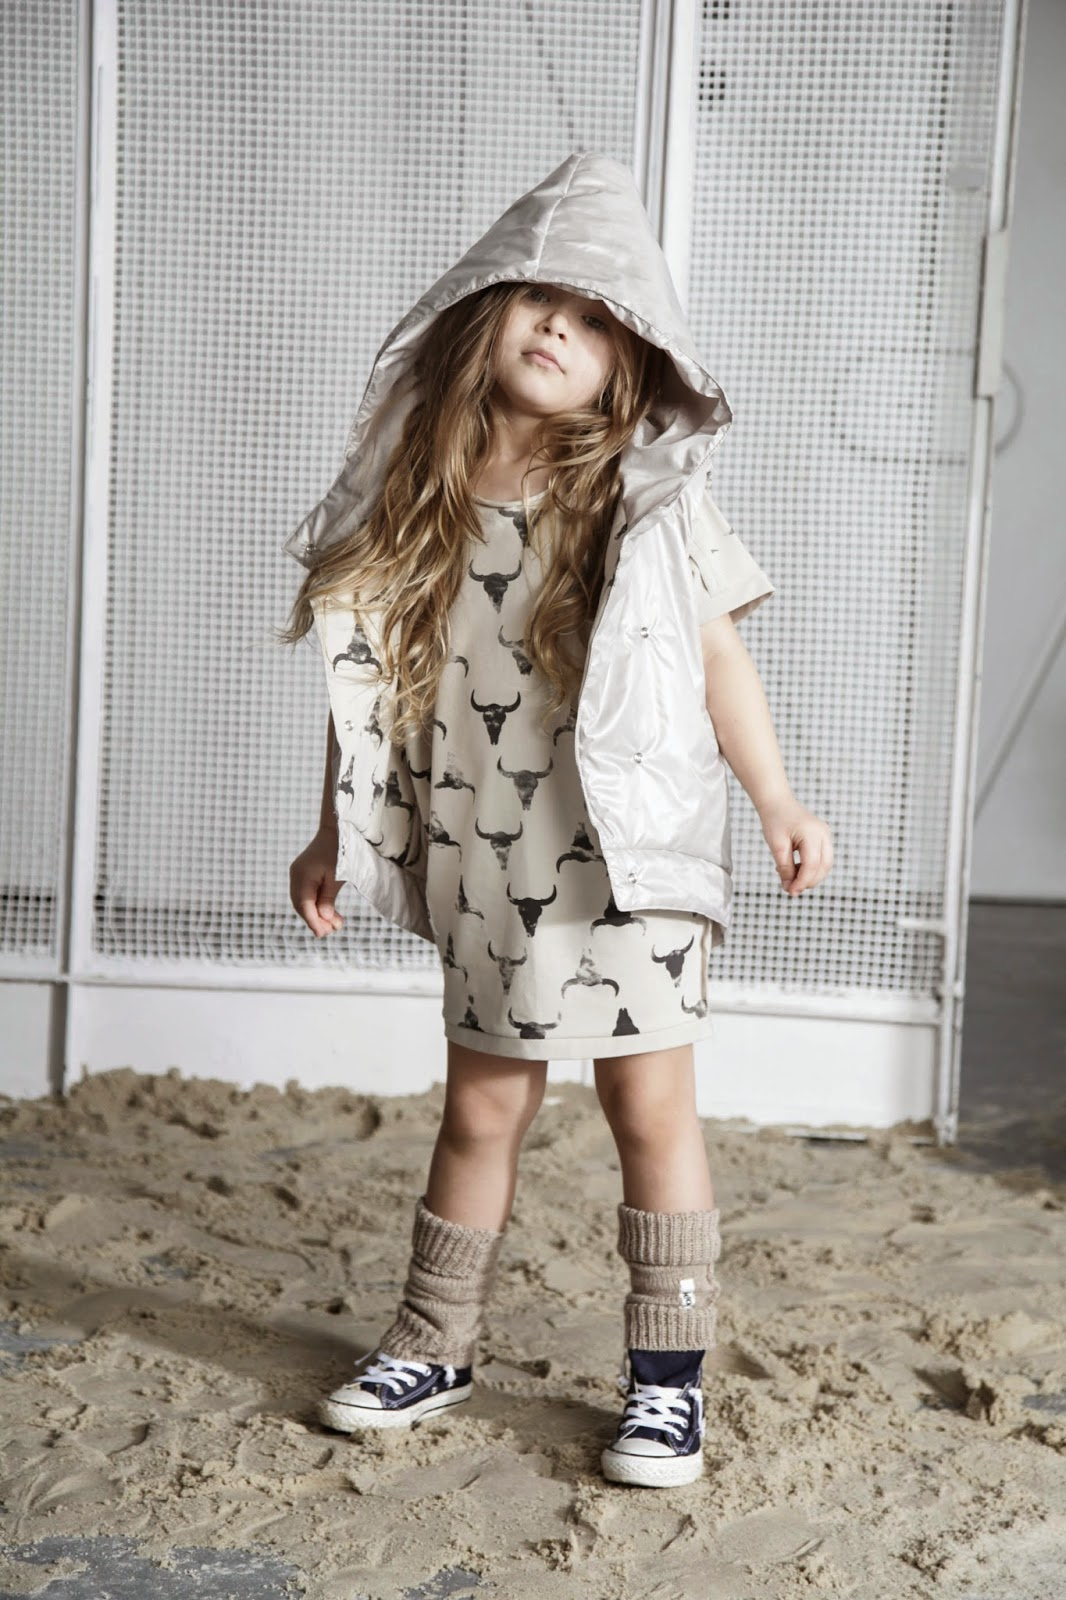 Kloo by Booso - Polish kids fashion spring-summer 2015 - bull's head dress